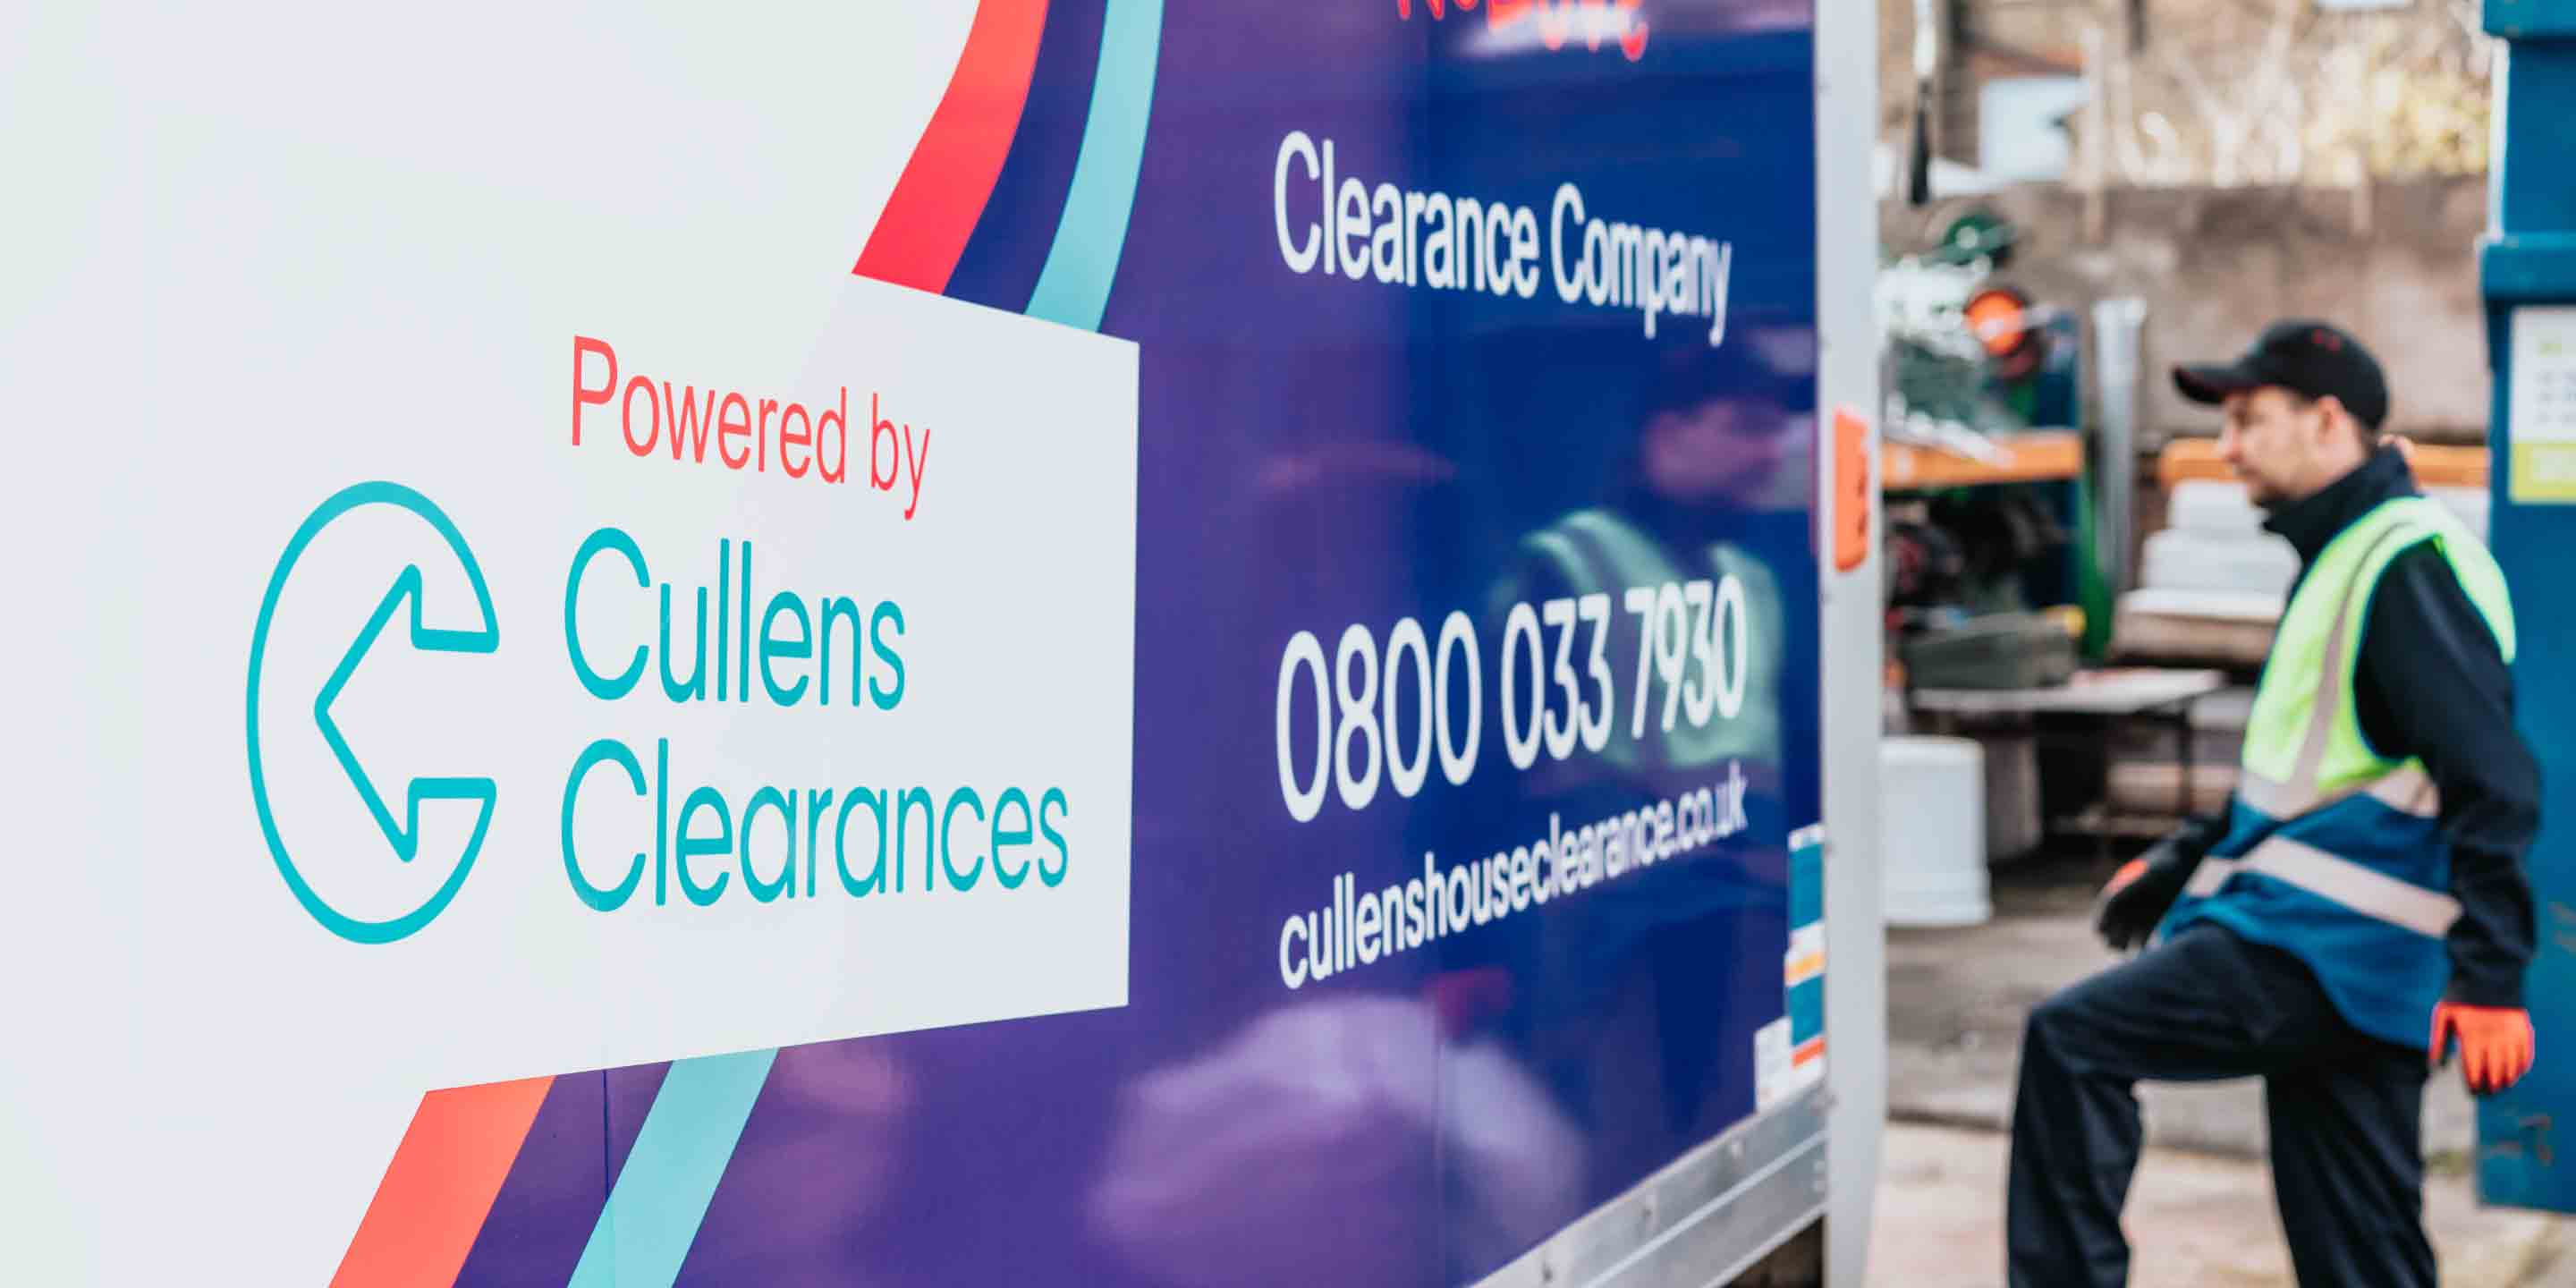 Surbiton Office Clearance Company